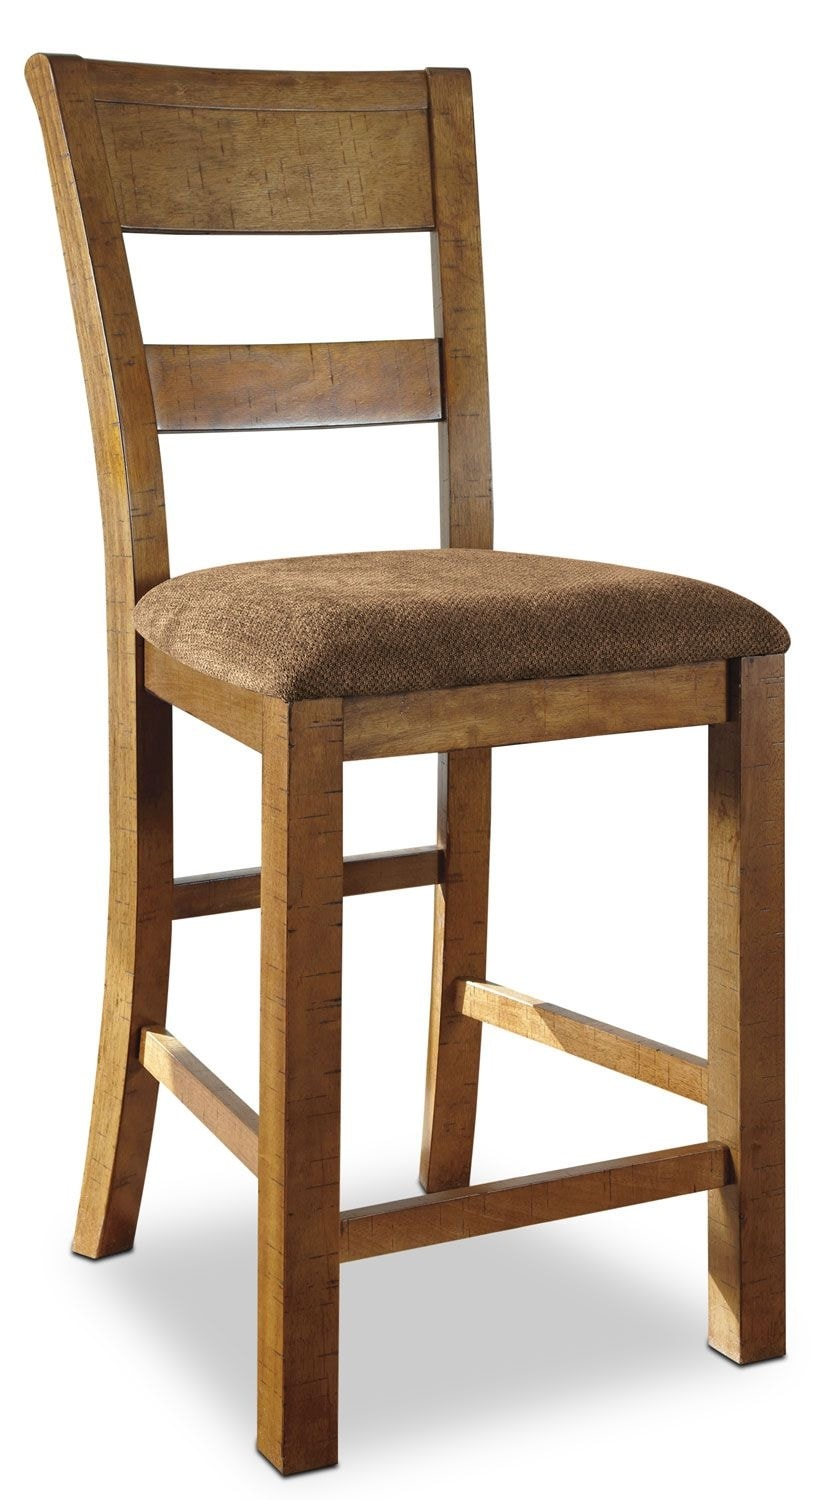 "Dining Room Furniture - Krinden 24"" Bar Stool"